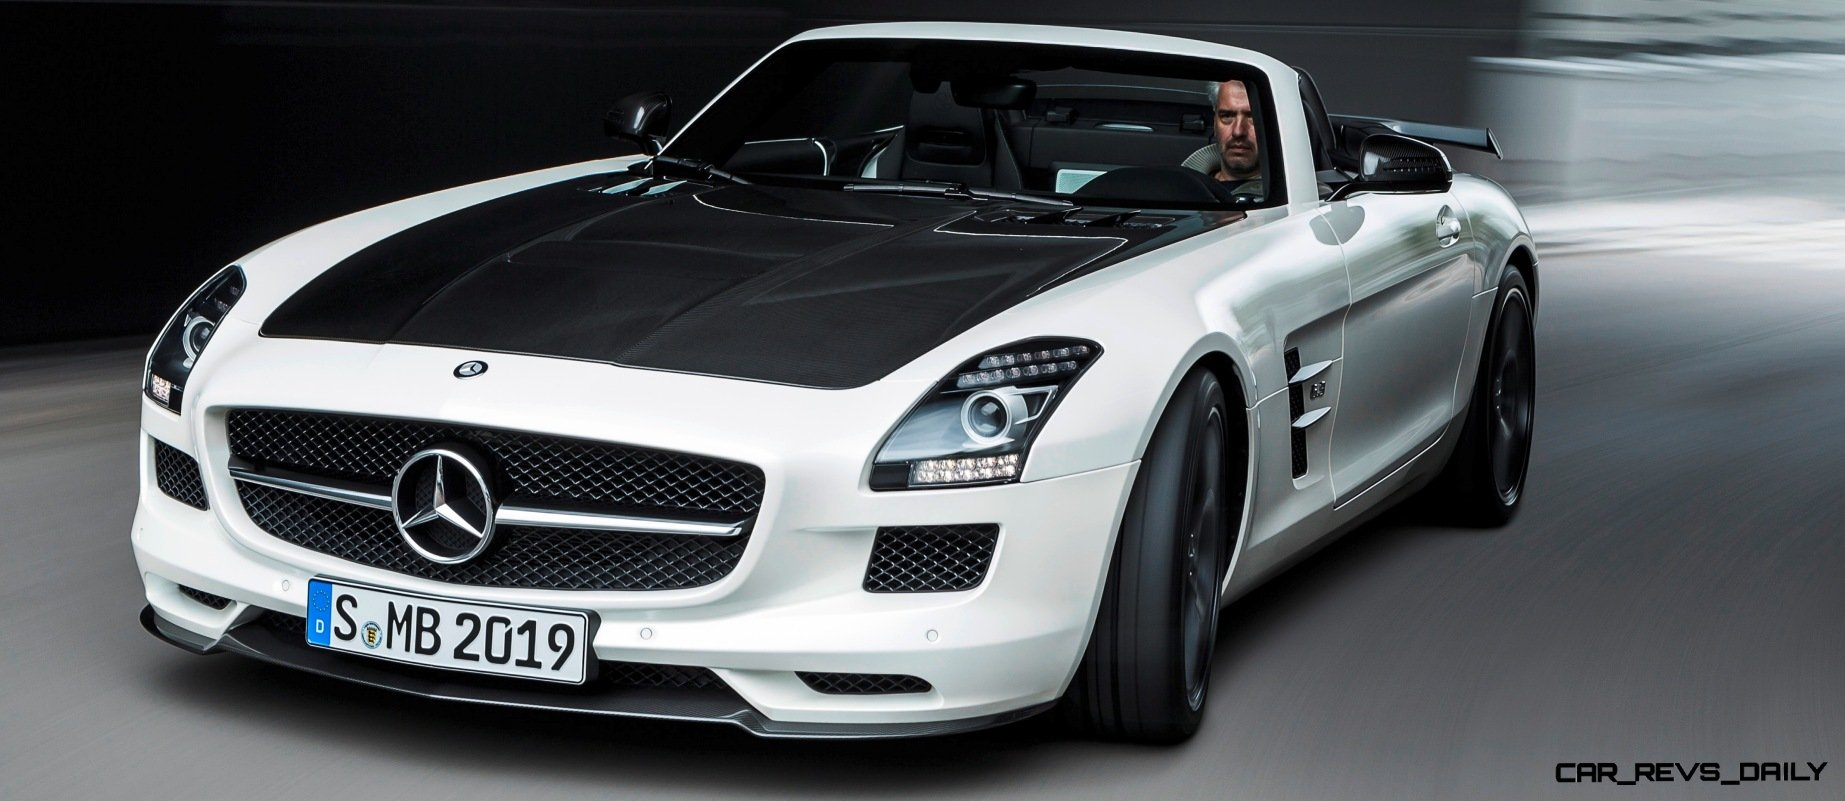 2015 sls amg gt final edition. Black Bedroom Furniture Sets. Home Design Ideas